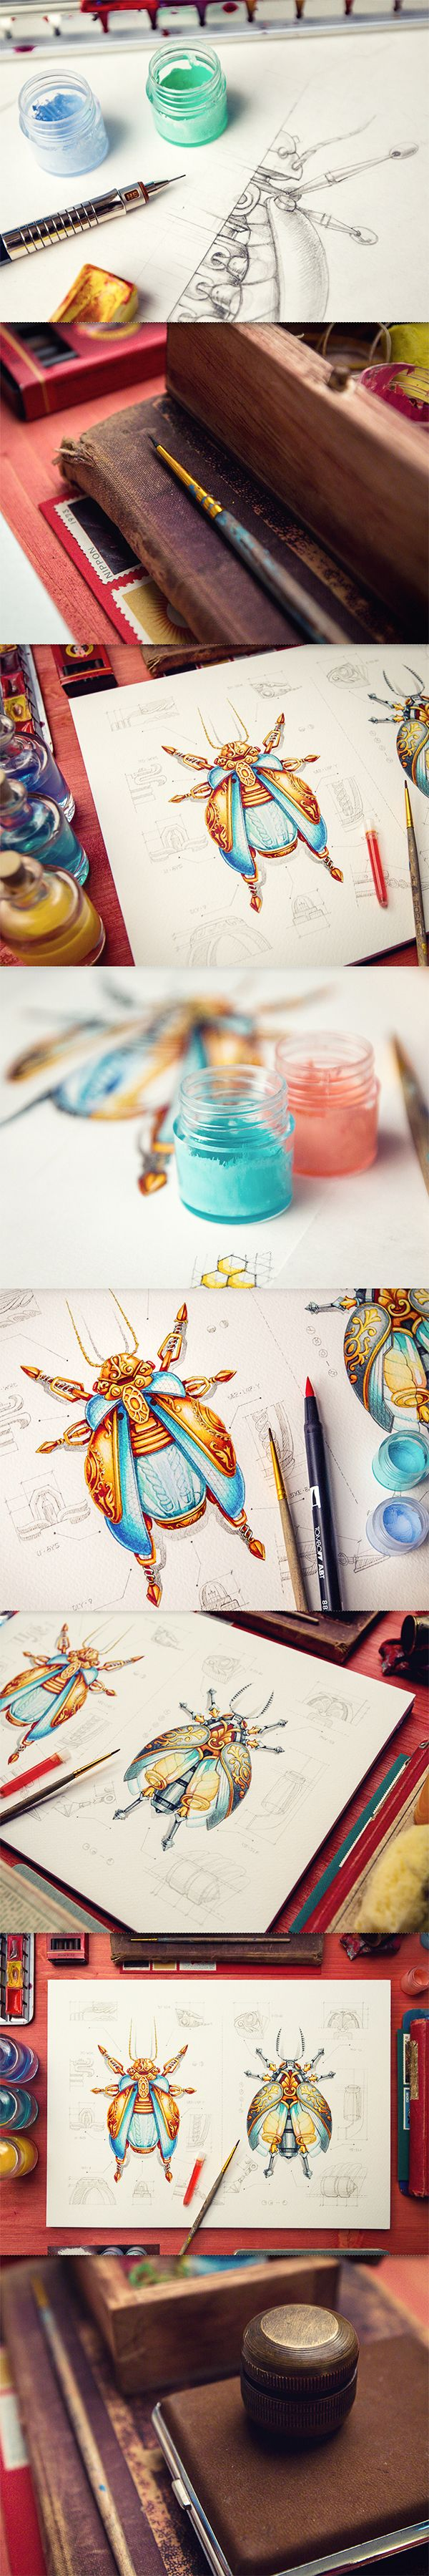 Various works by Mike, via Behance